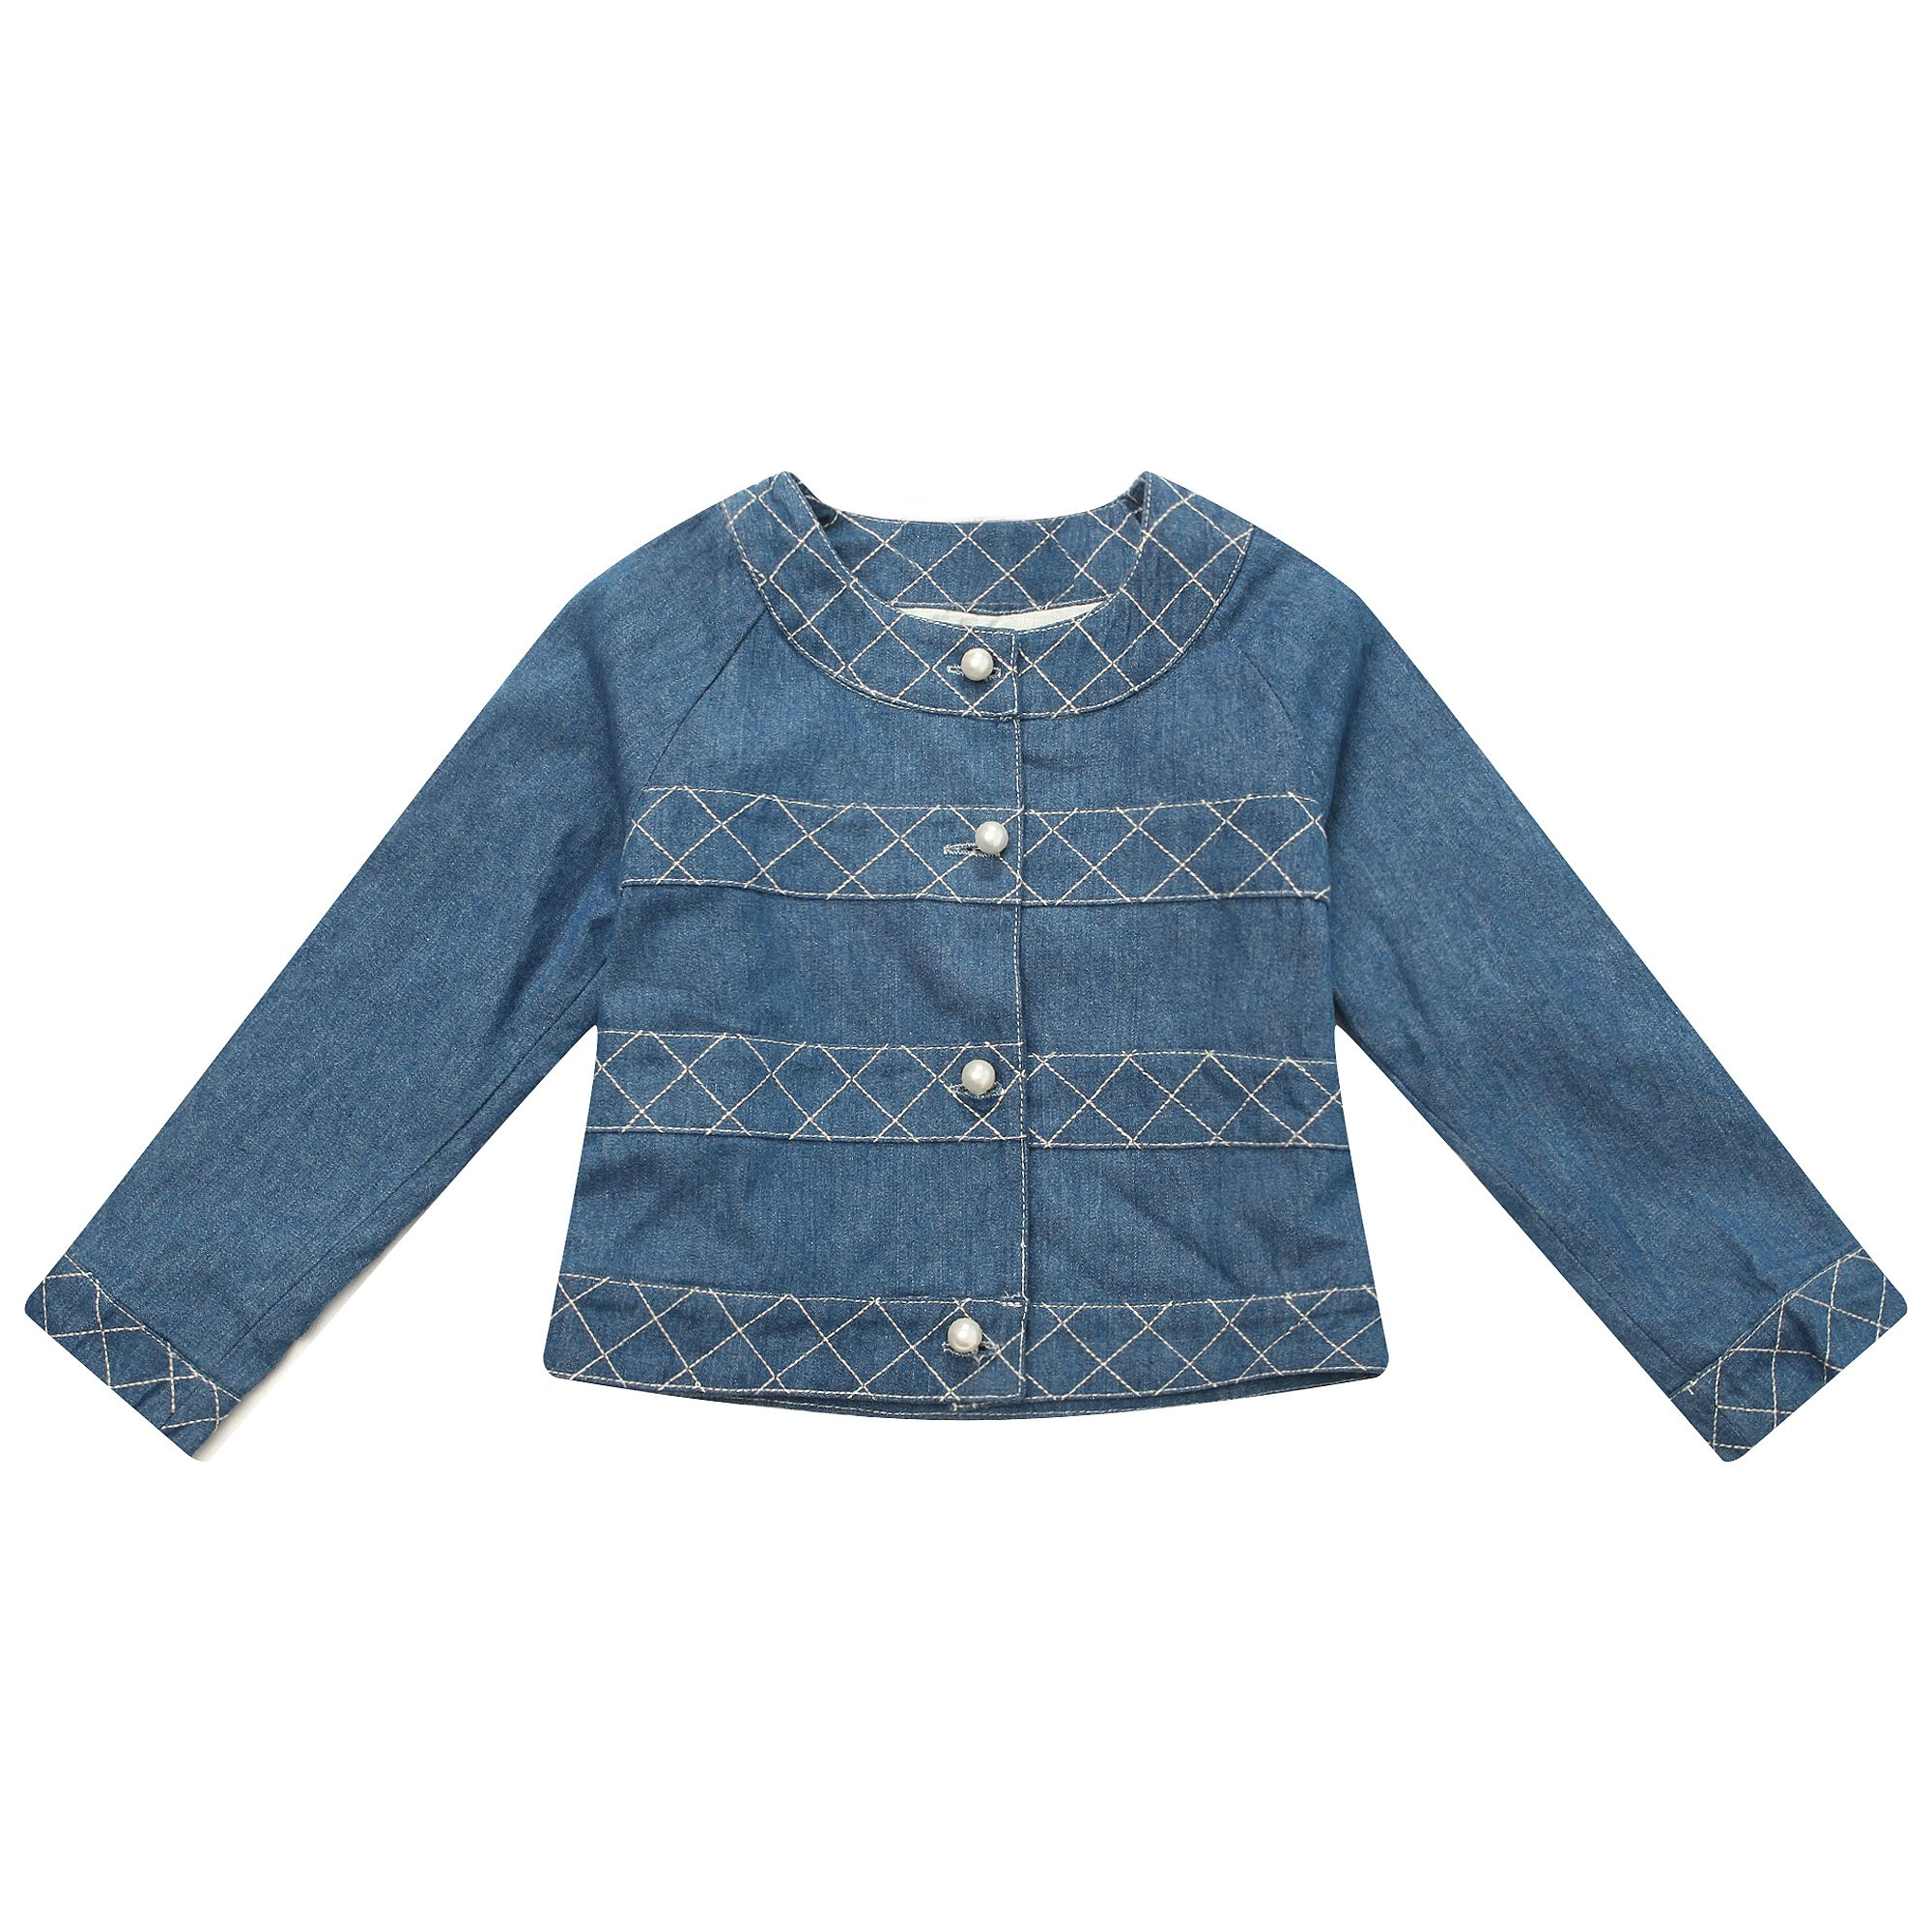 Richie House Little Girls' Cute Short Denim Coat with Thick Thread Embroidery Decoration RH1126-4/5